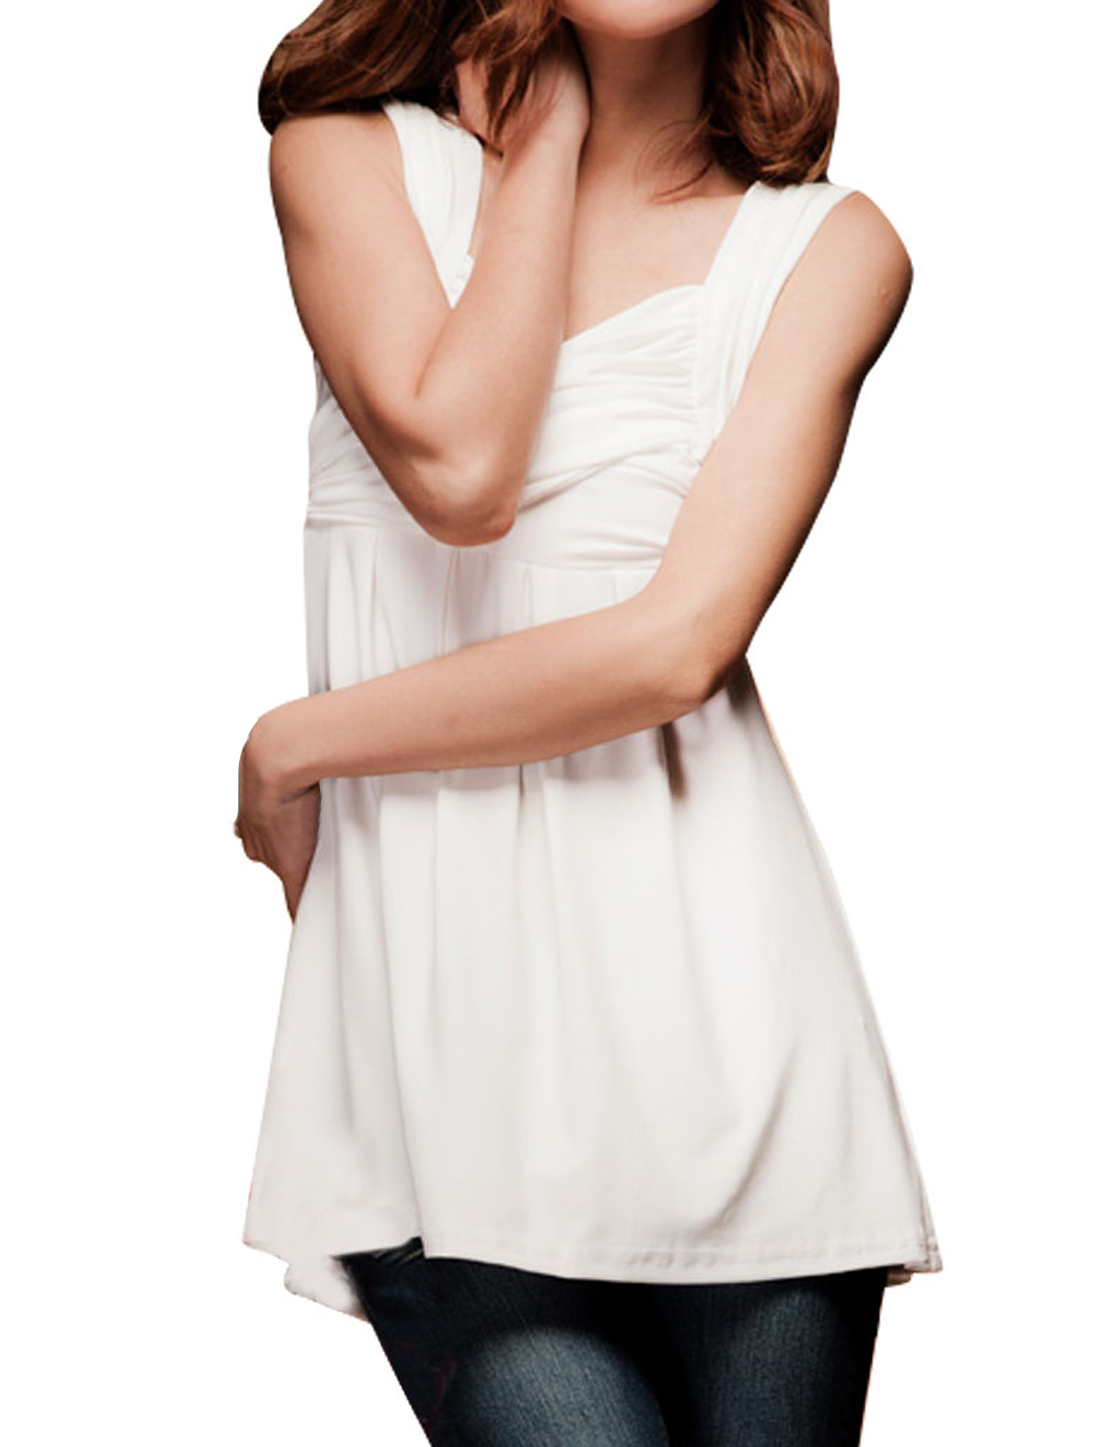 Women Sweetheart Collar Ruffled Cross Front Tank Shirt White XS